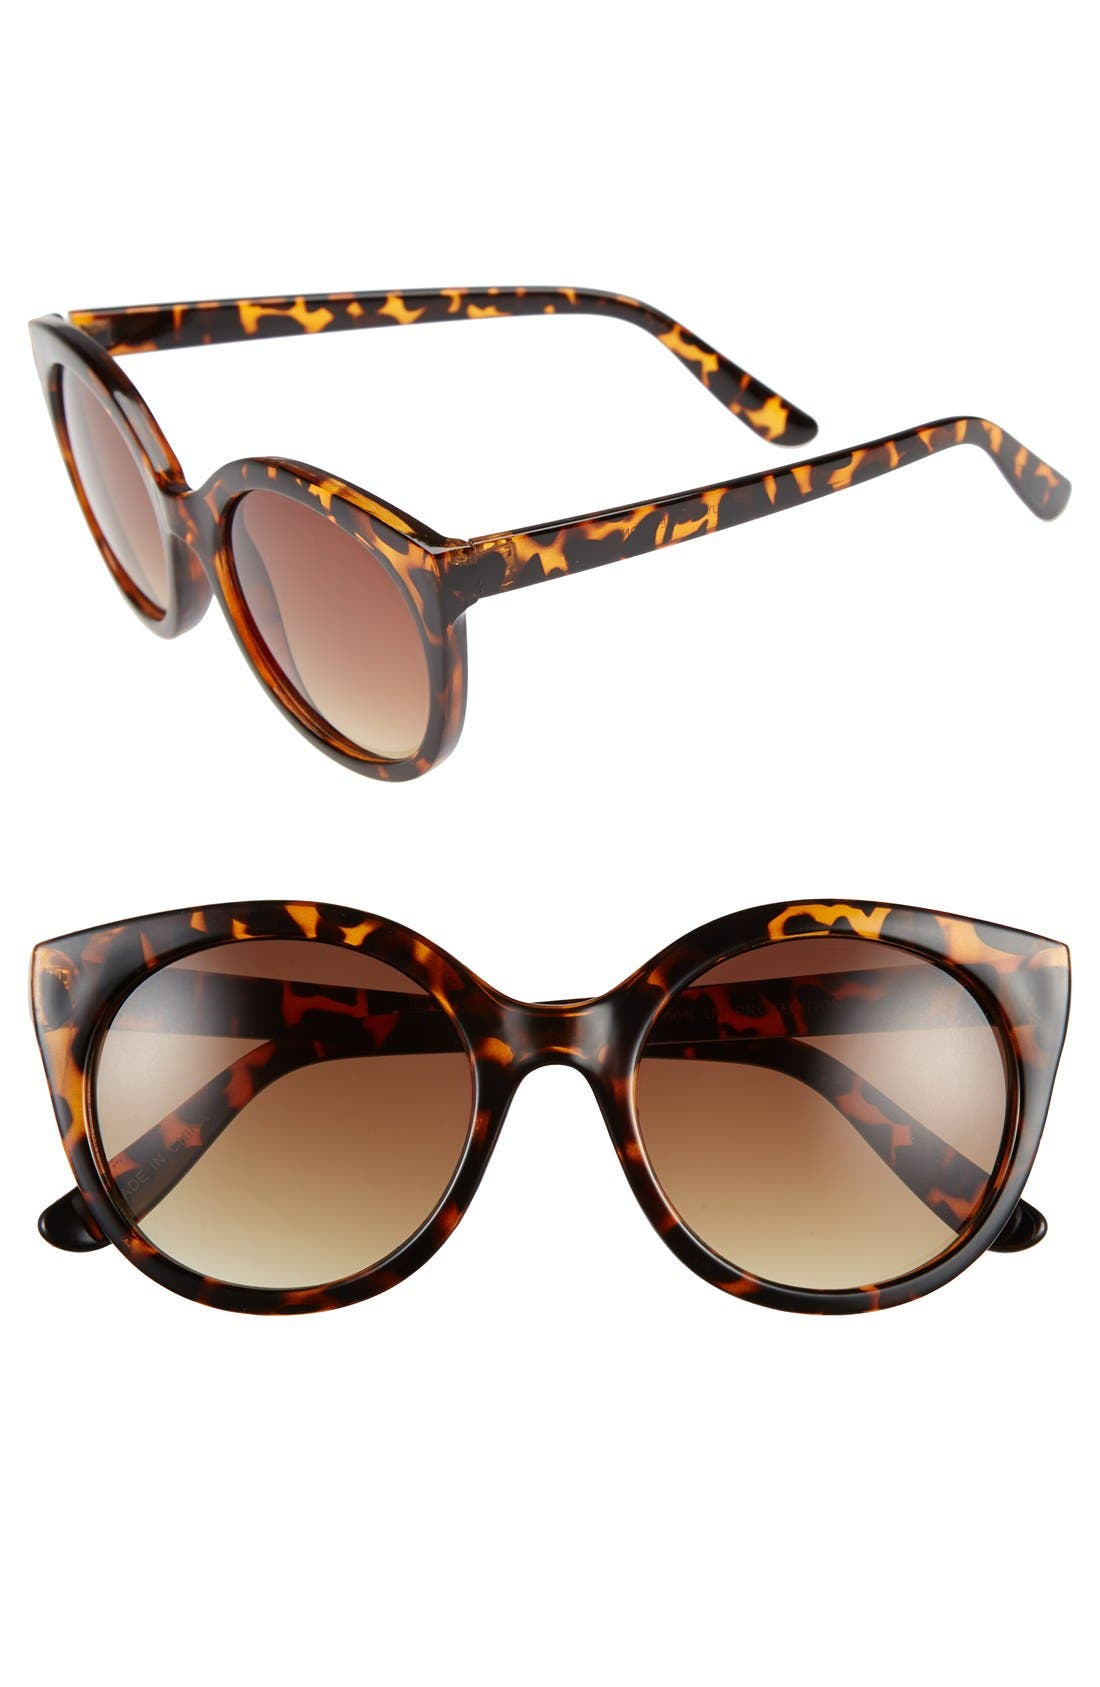 60mm Retro Sunglasses,                         Main,                         color, 200